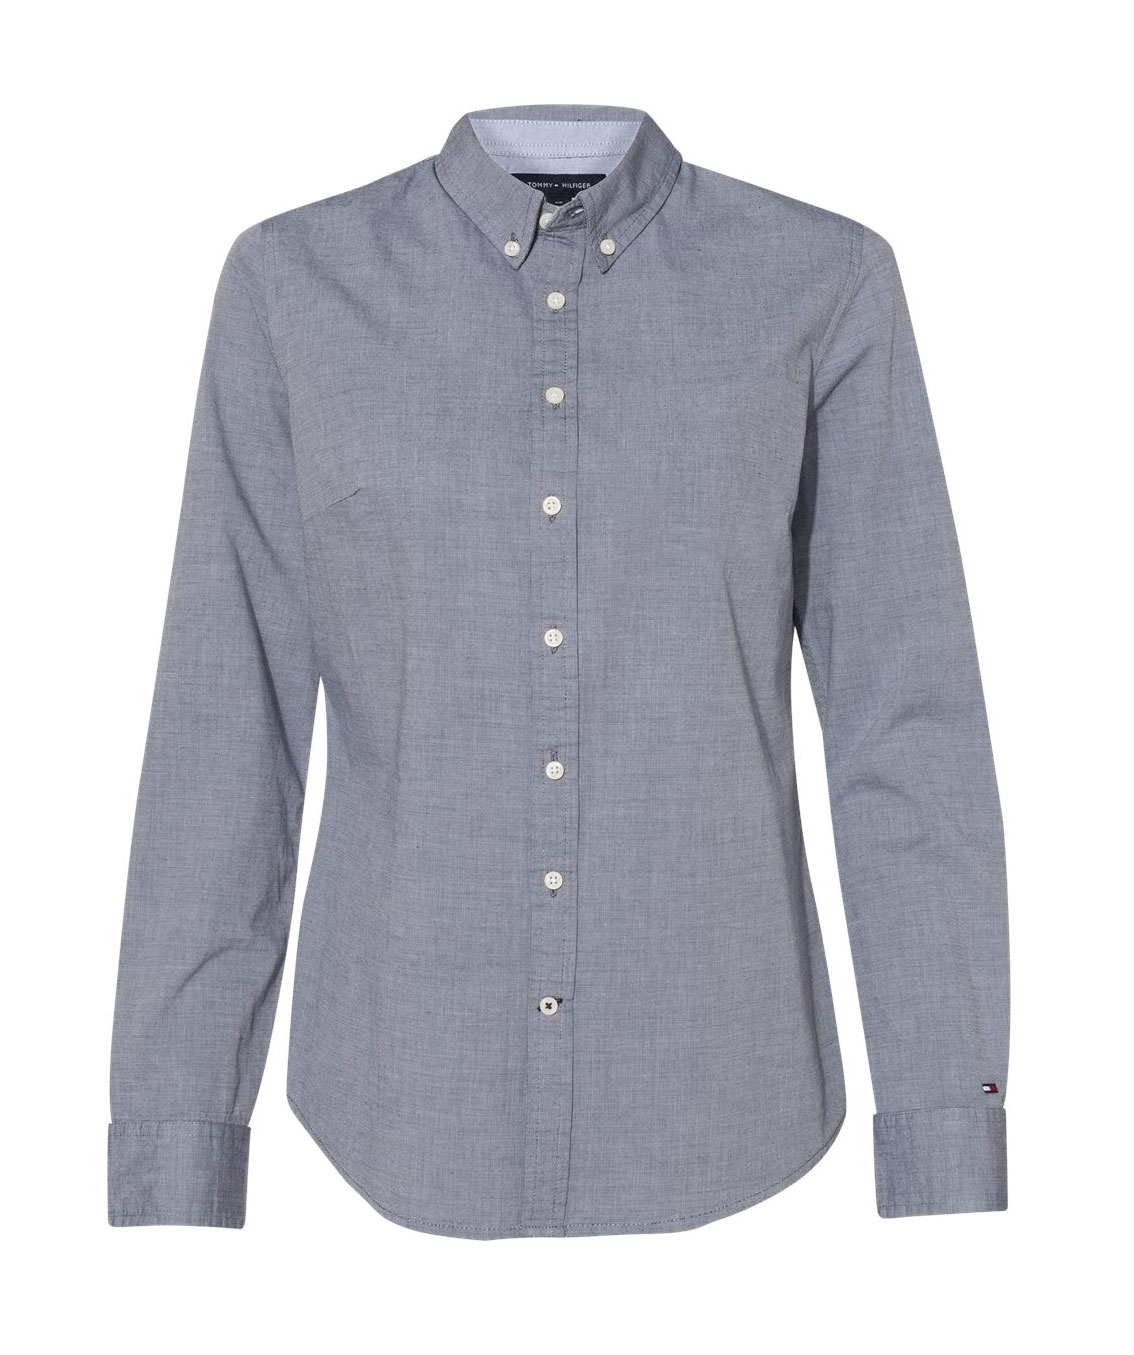 Tommy Hilfiger - Womens Capote End-on-End Chambray Shirt